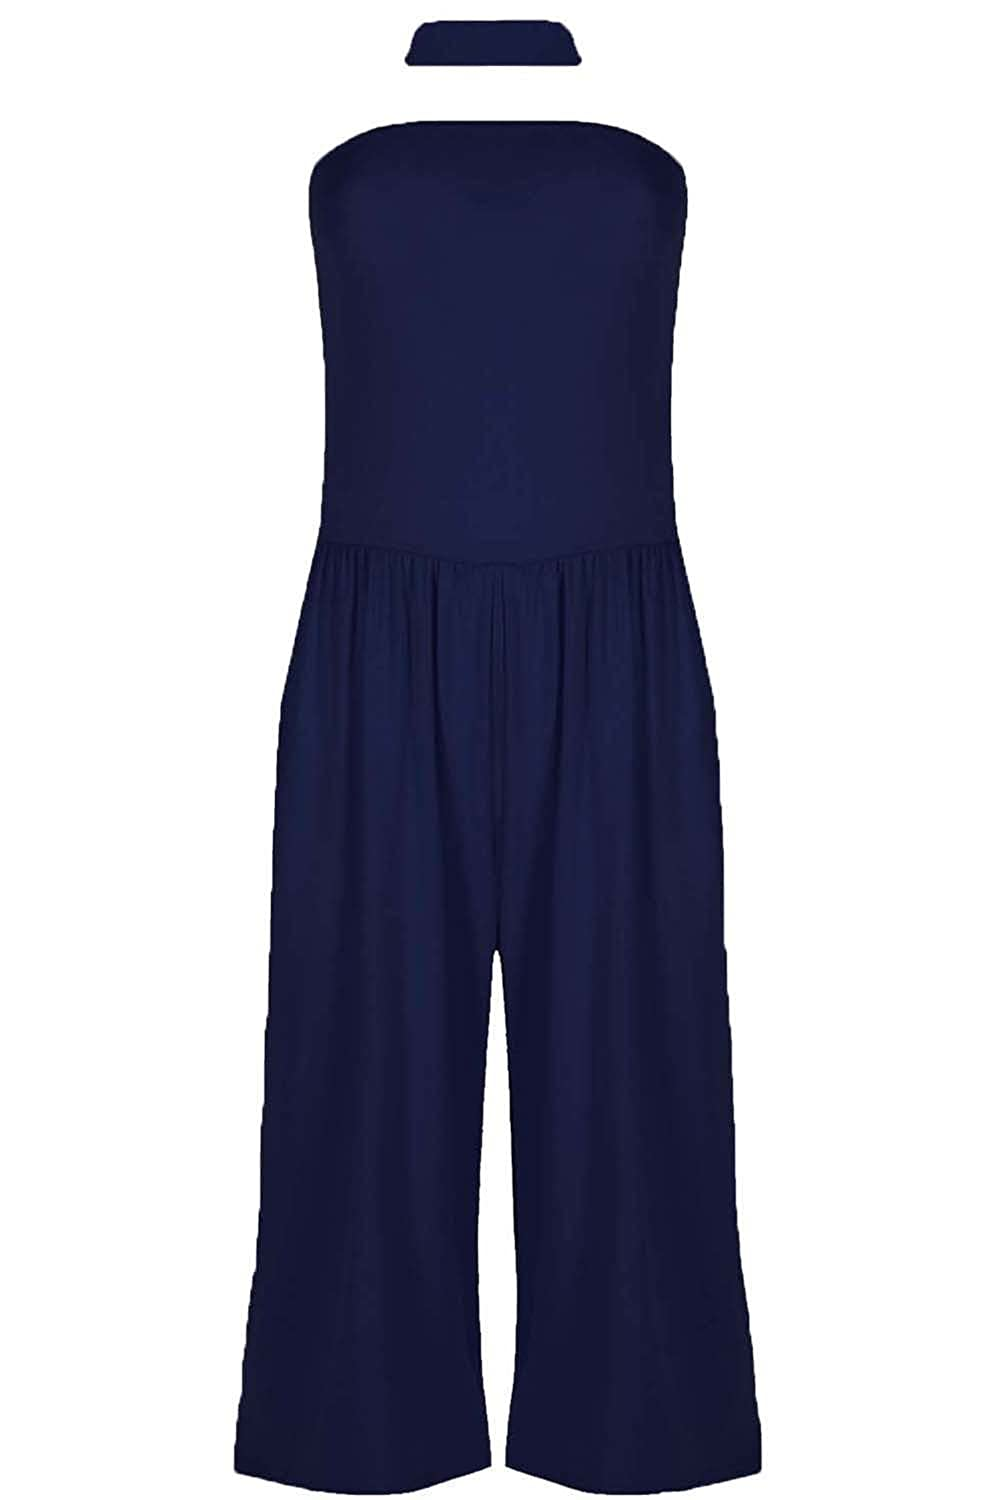 Women Ladies Choker Boobtube Wide Leg Palazzo Playsuit Jumpsuit All In One Piece